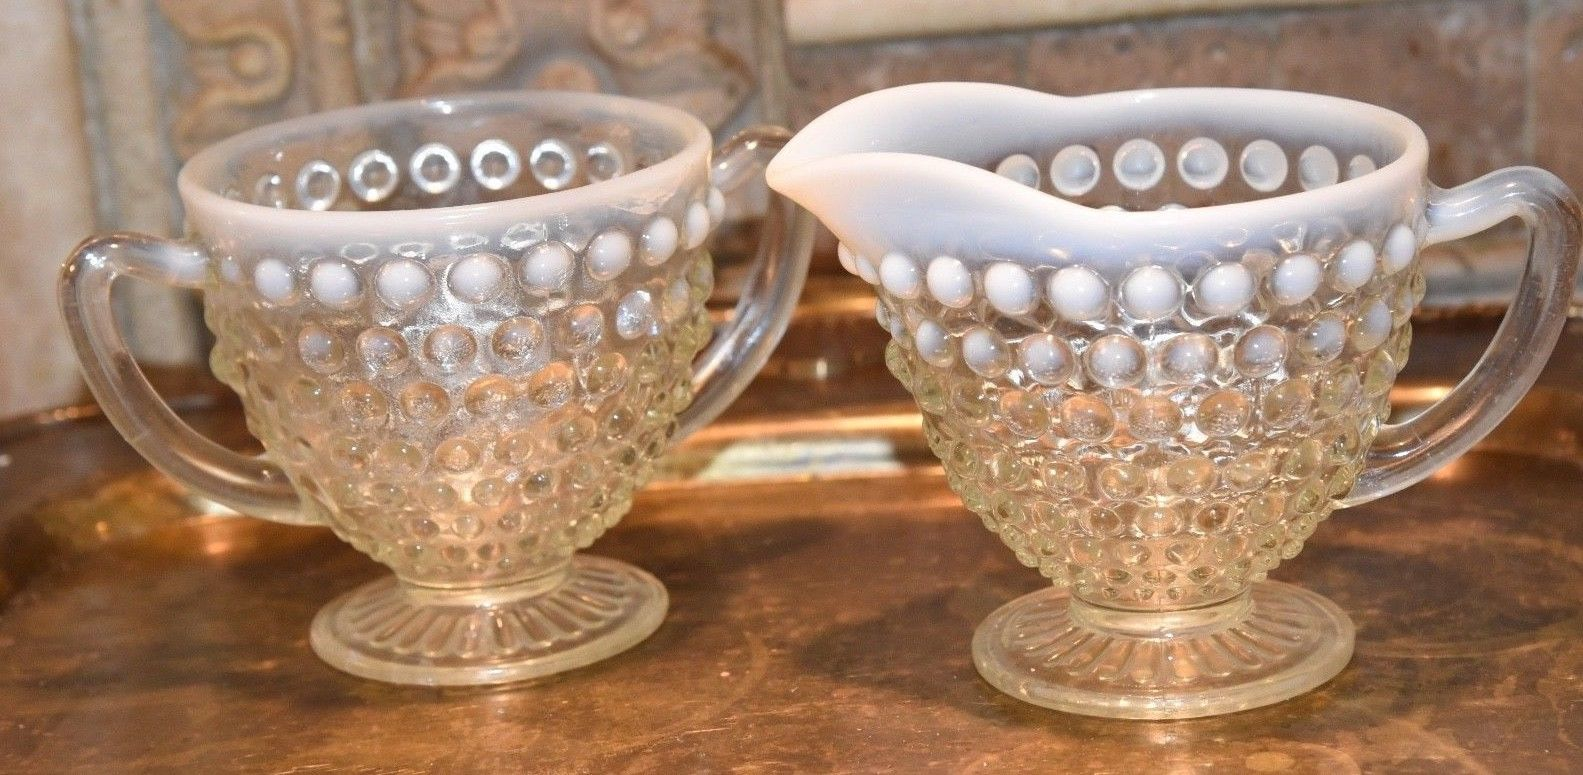 Moonstone HOBNAIL Cream Creamer & Sugar Bowl WHITE ART GLASS Vintage FENTON